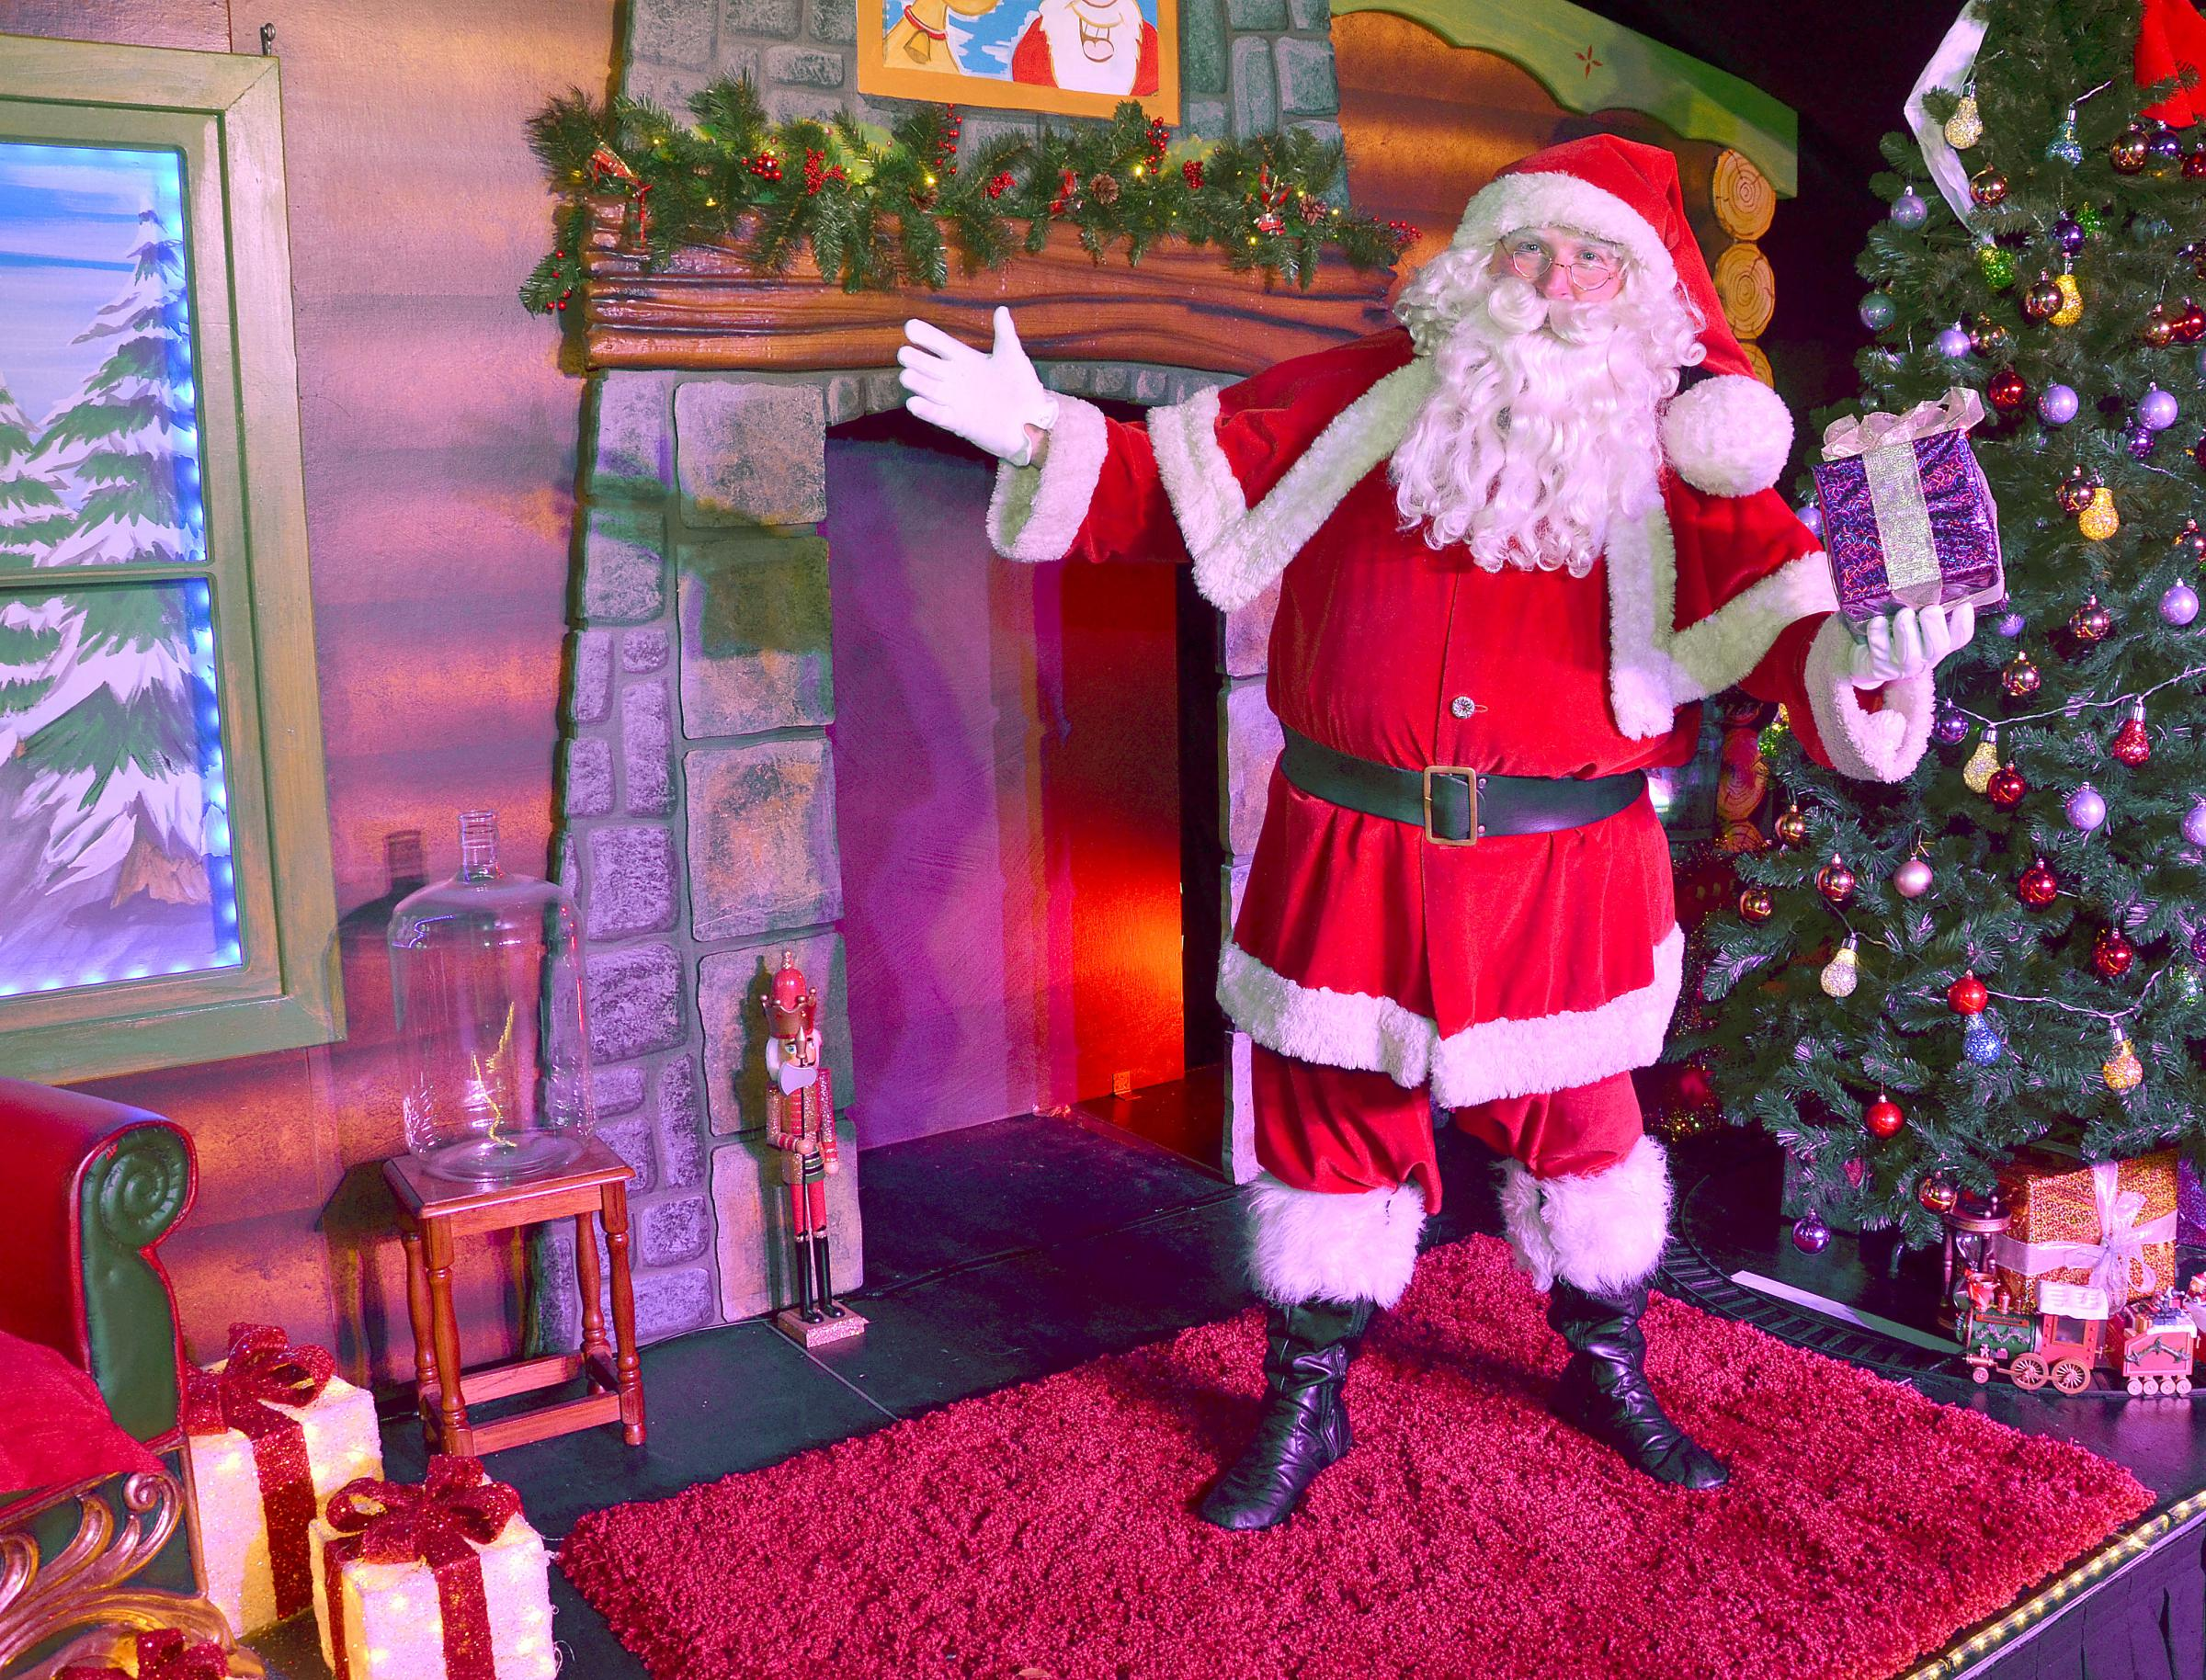 Magical festive fun to be had at Cadbury World this Christmas